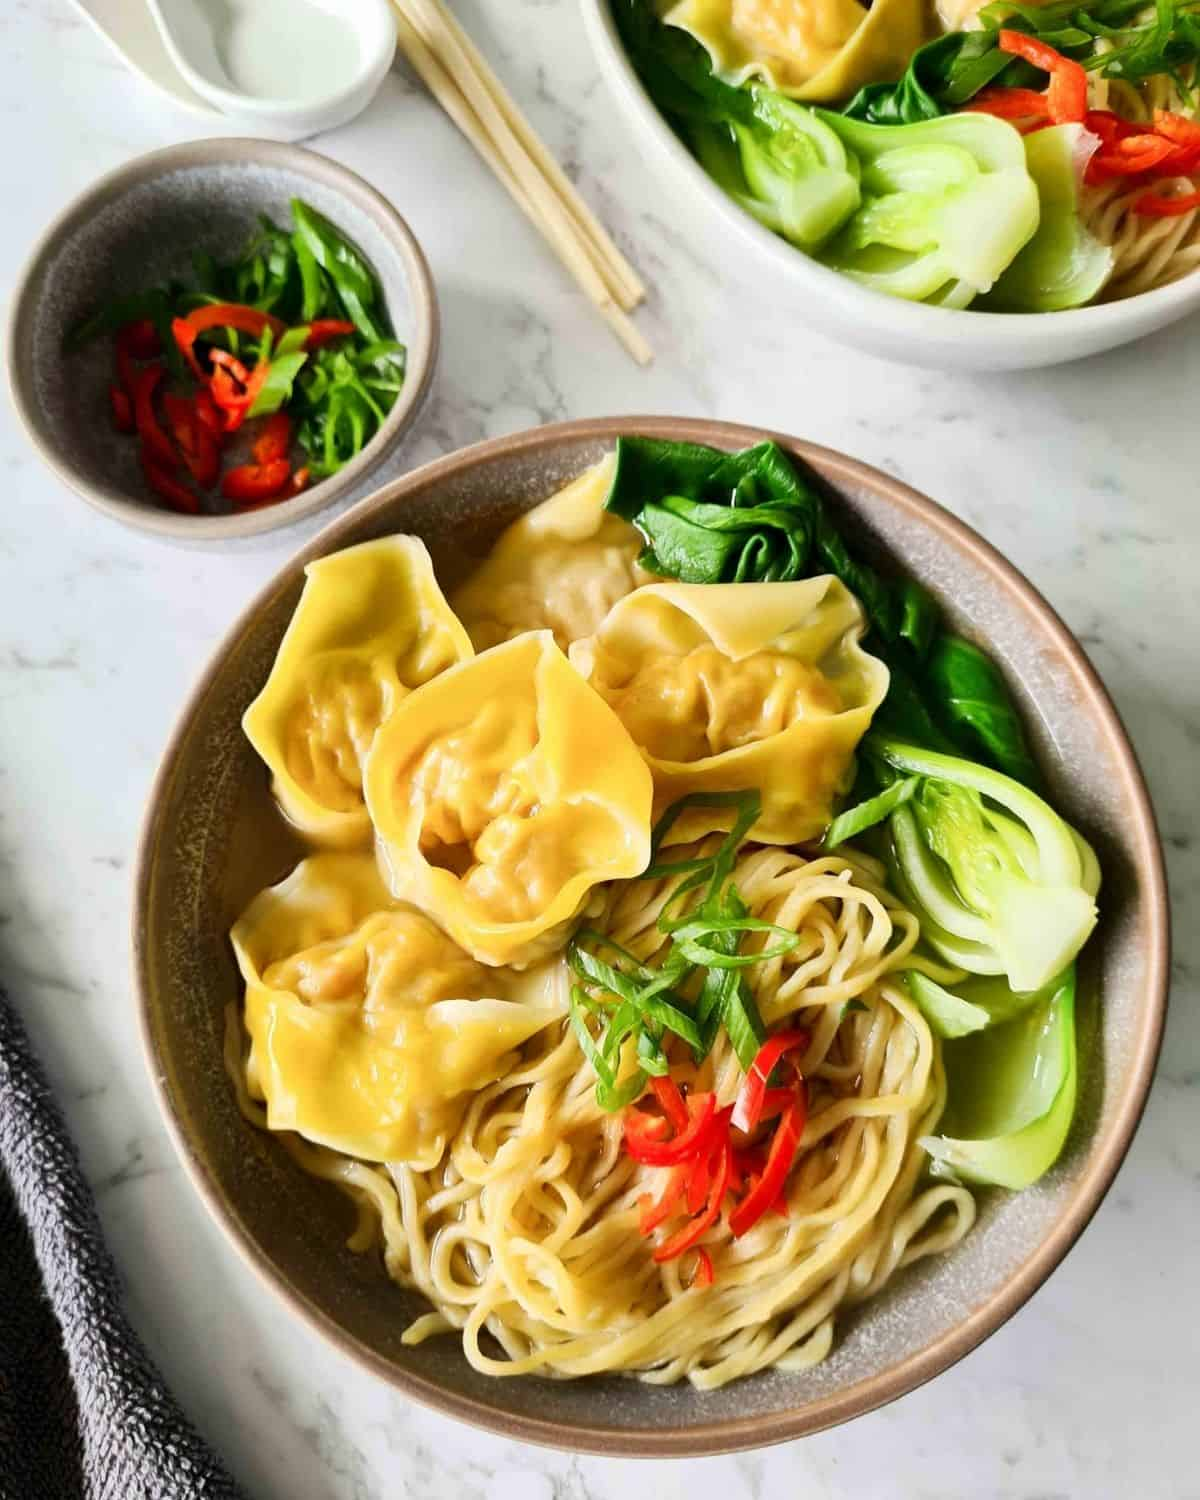 A bowl of wonton noodle soup topped with scallions and red chilli